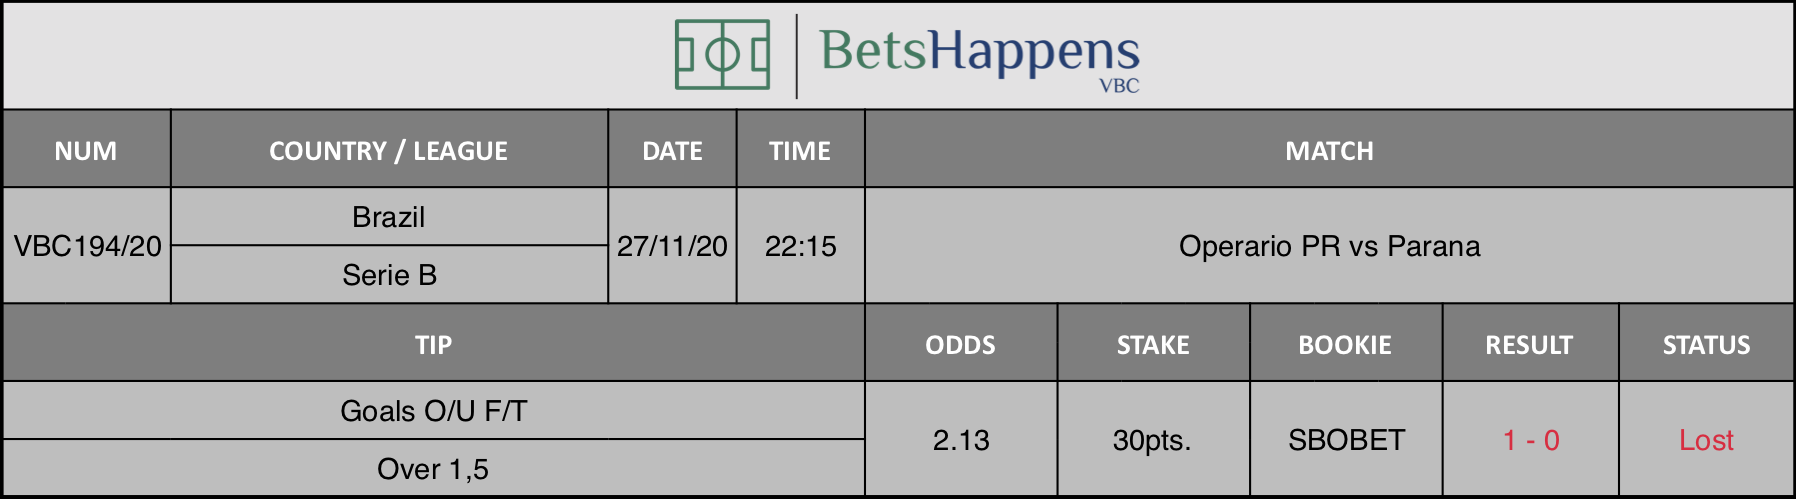 Results of our tip for the Operario PR vs Parana match where Goals O/U F/T Over 1,5 is recommended.